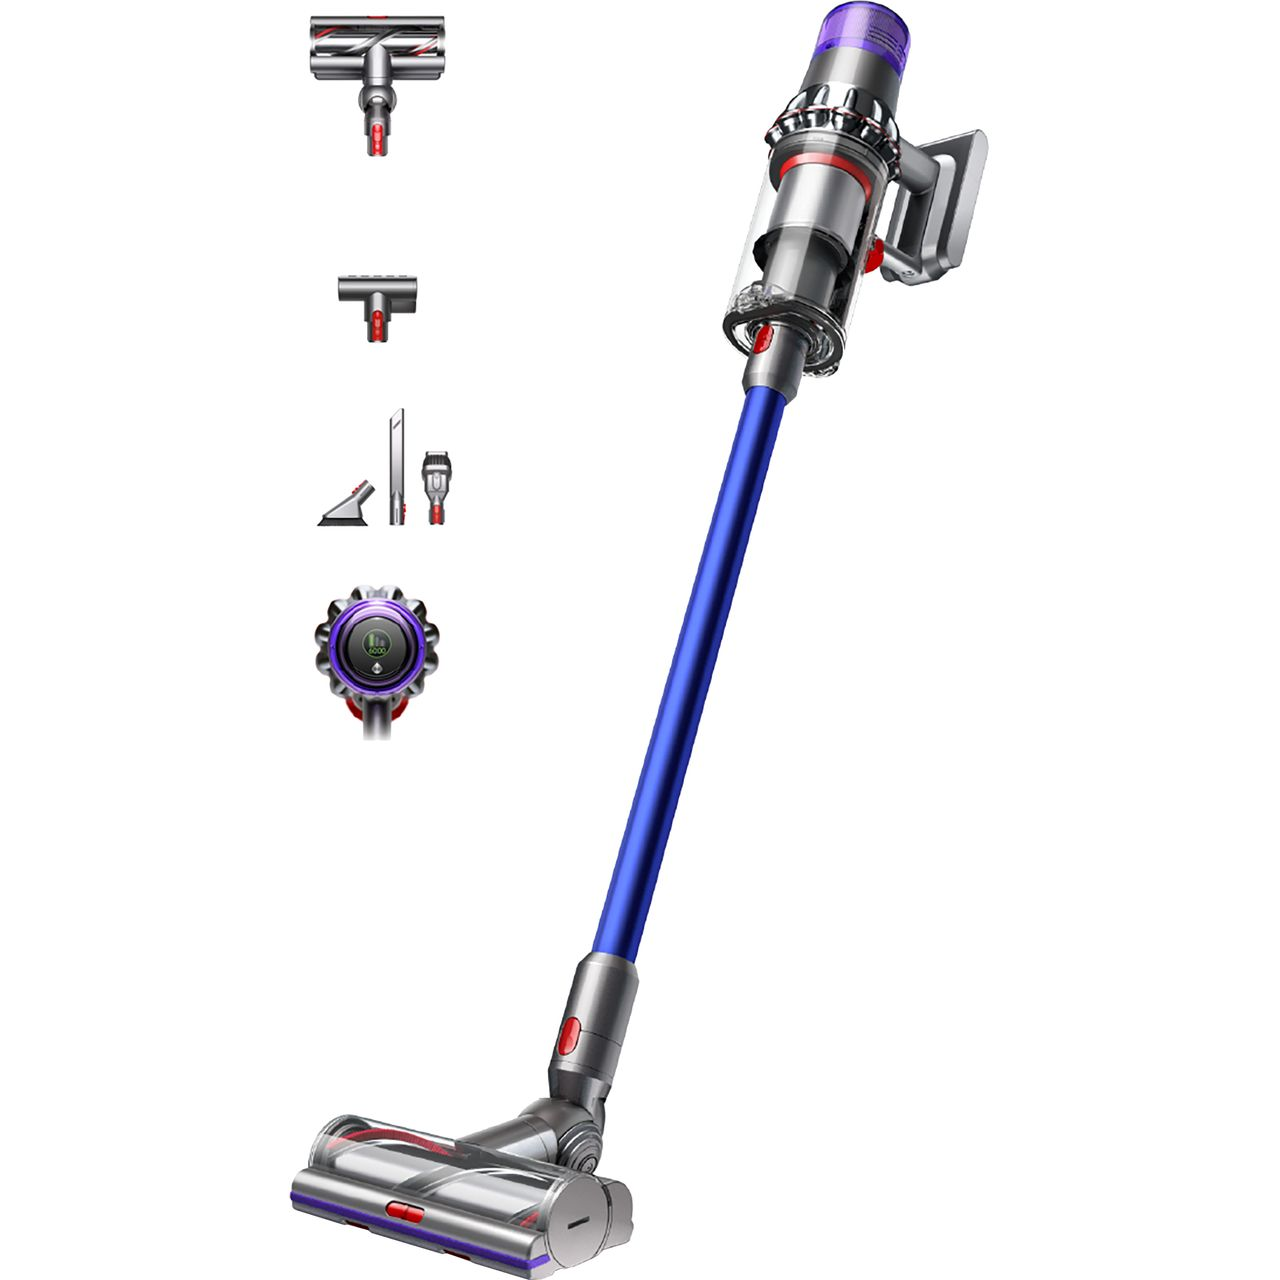 Dyson V11 Absolute Cordless Vacuum Cleaner with up to 60 Minutes Run Time